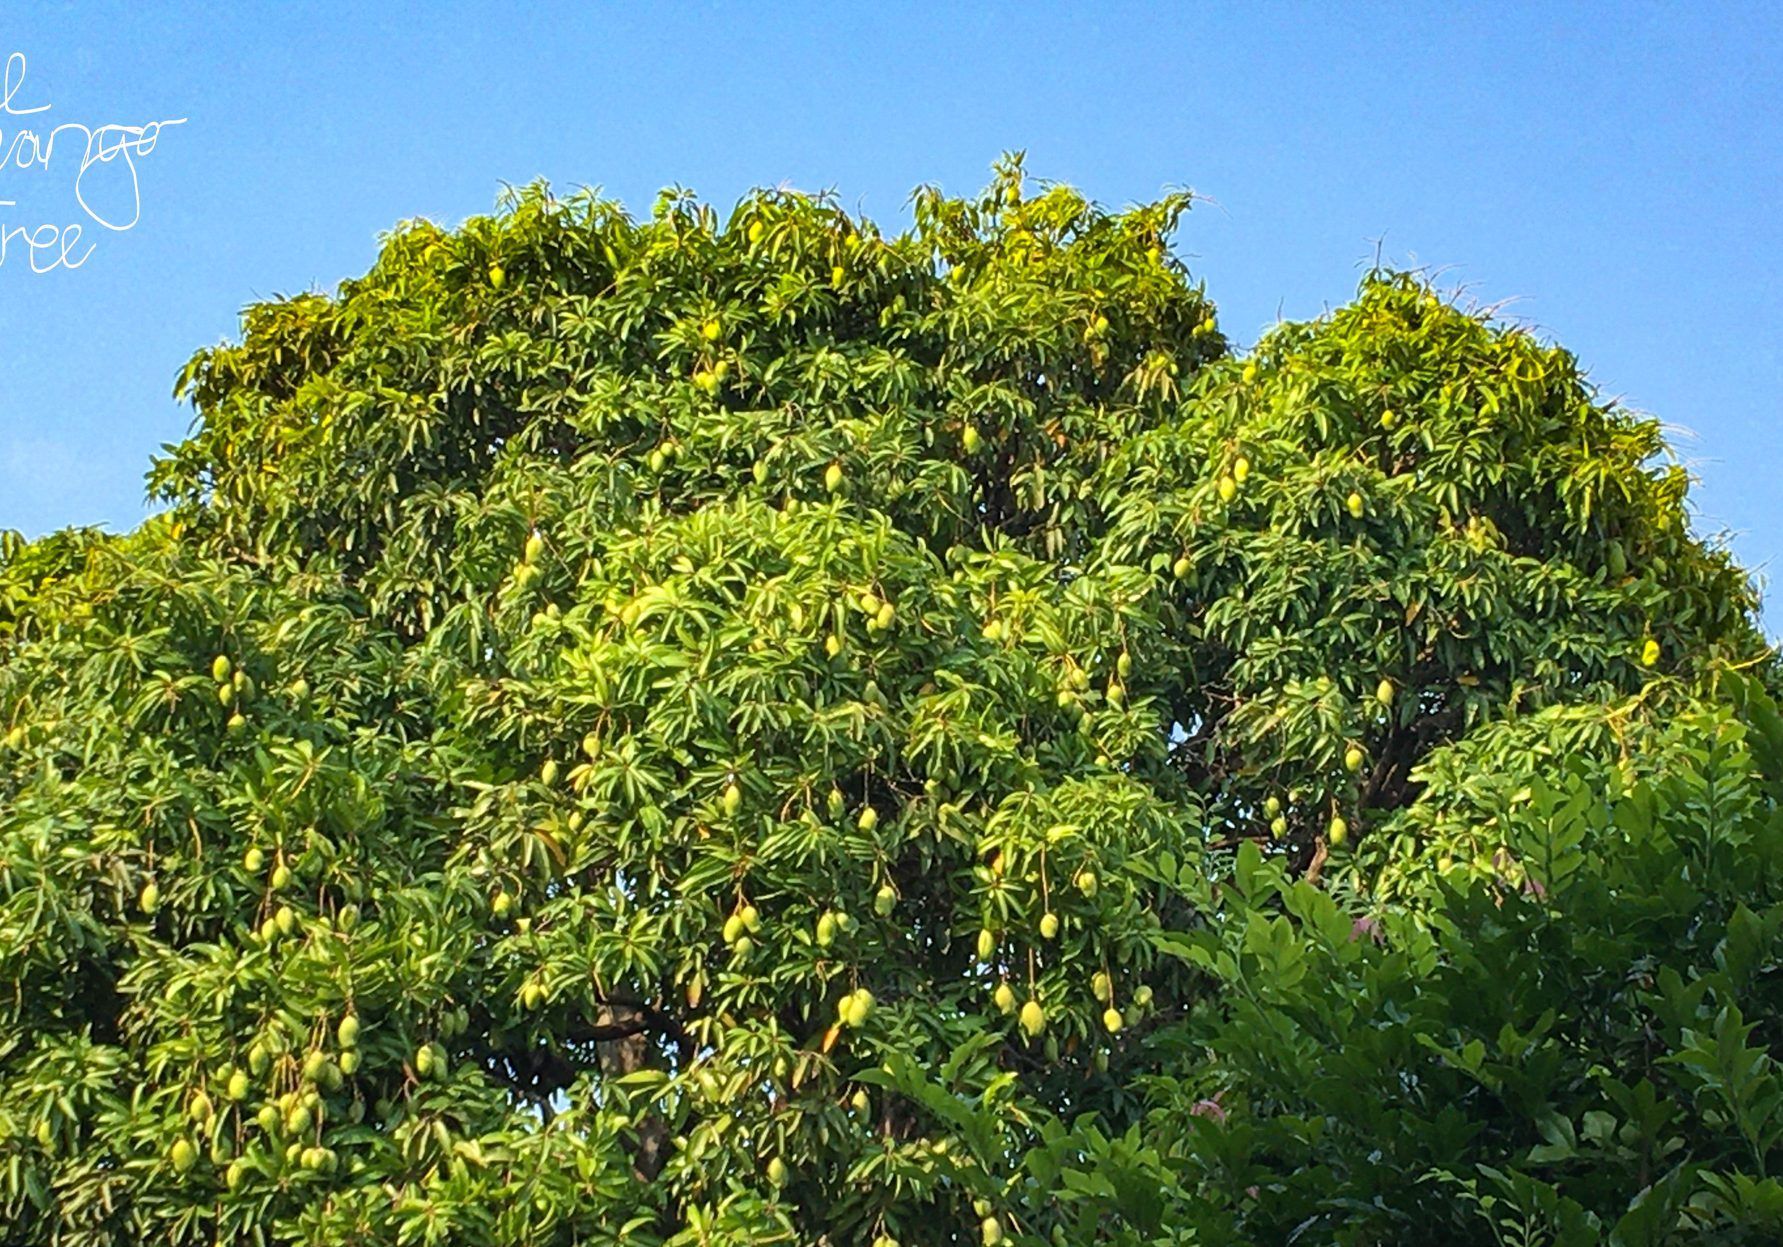 1-the mango tree